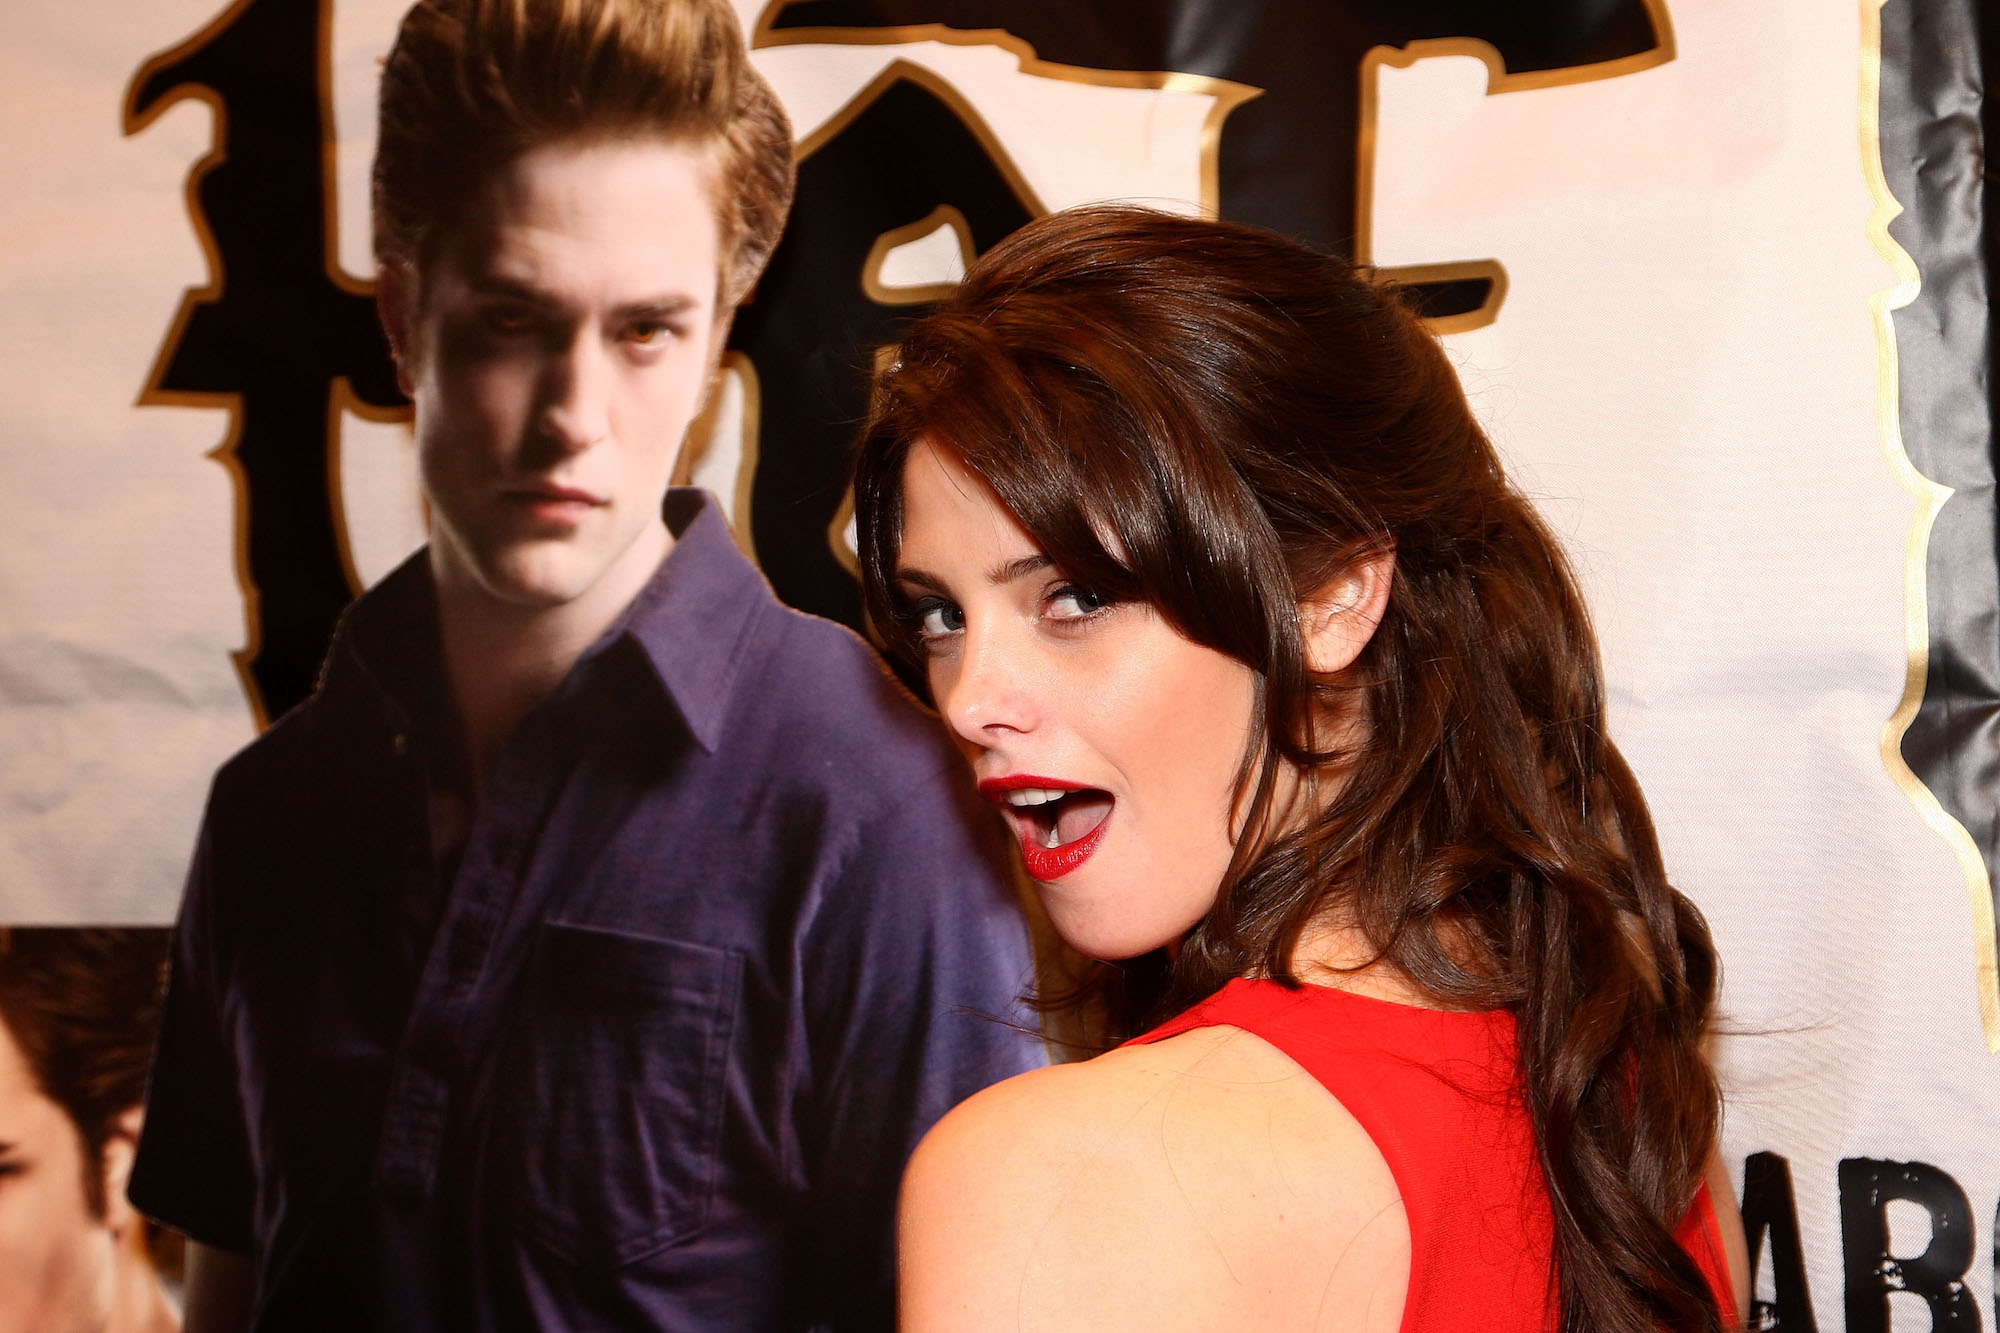 Ashley Greene at the 'Twilight' Midnight DVD launch at Hot Topic on March 20, 2009